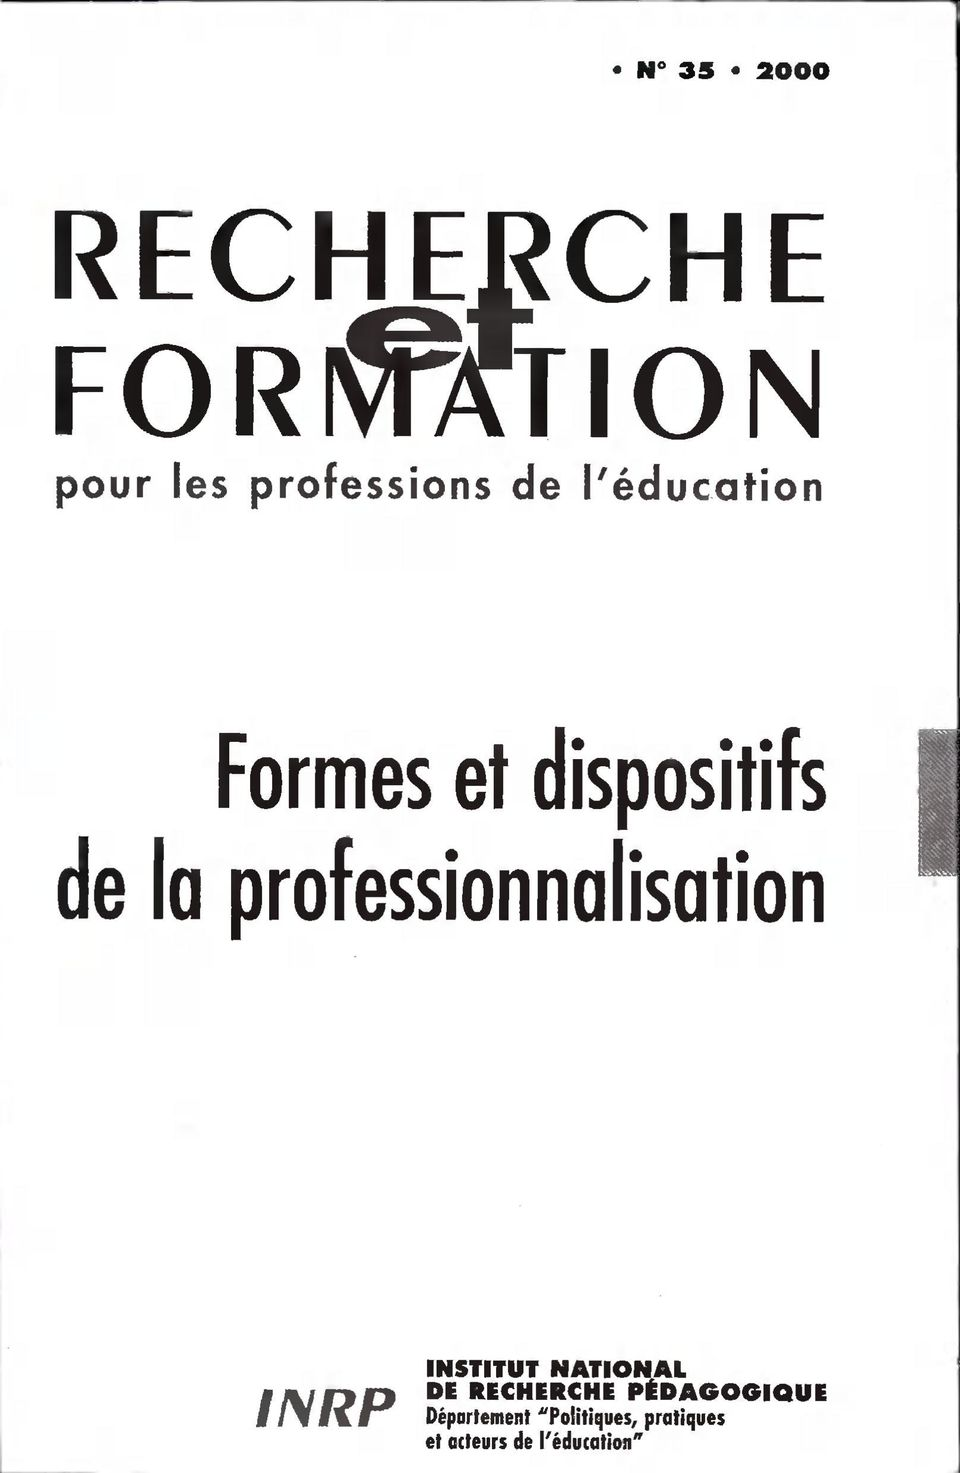 professionnalisation H i \JfJD f /\ Ê\ê INSTITUT NATIONA1